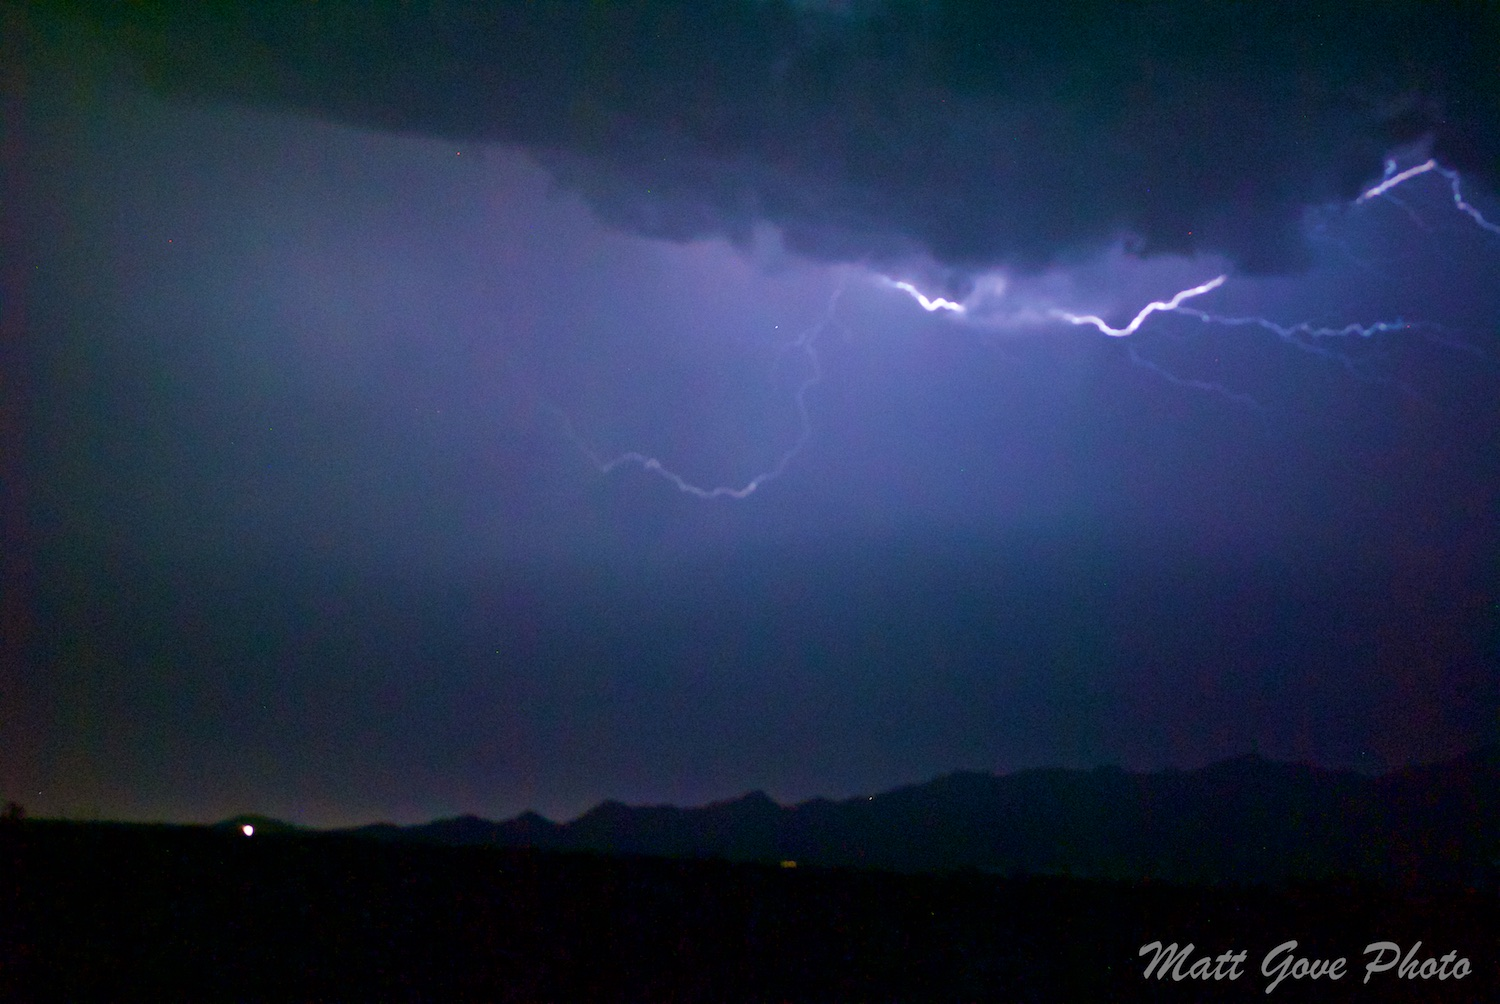 7 Steps to the Perfect Lightning Photo – Matthew Gove Blog